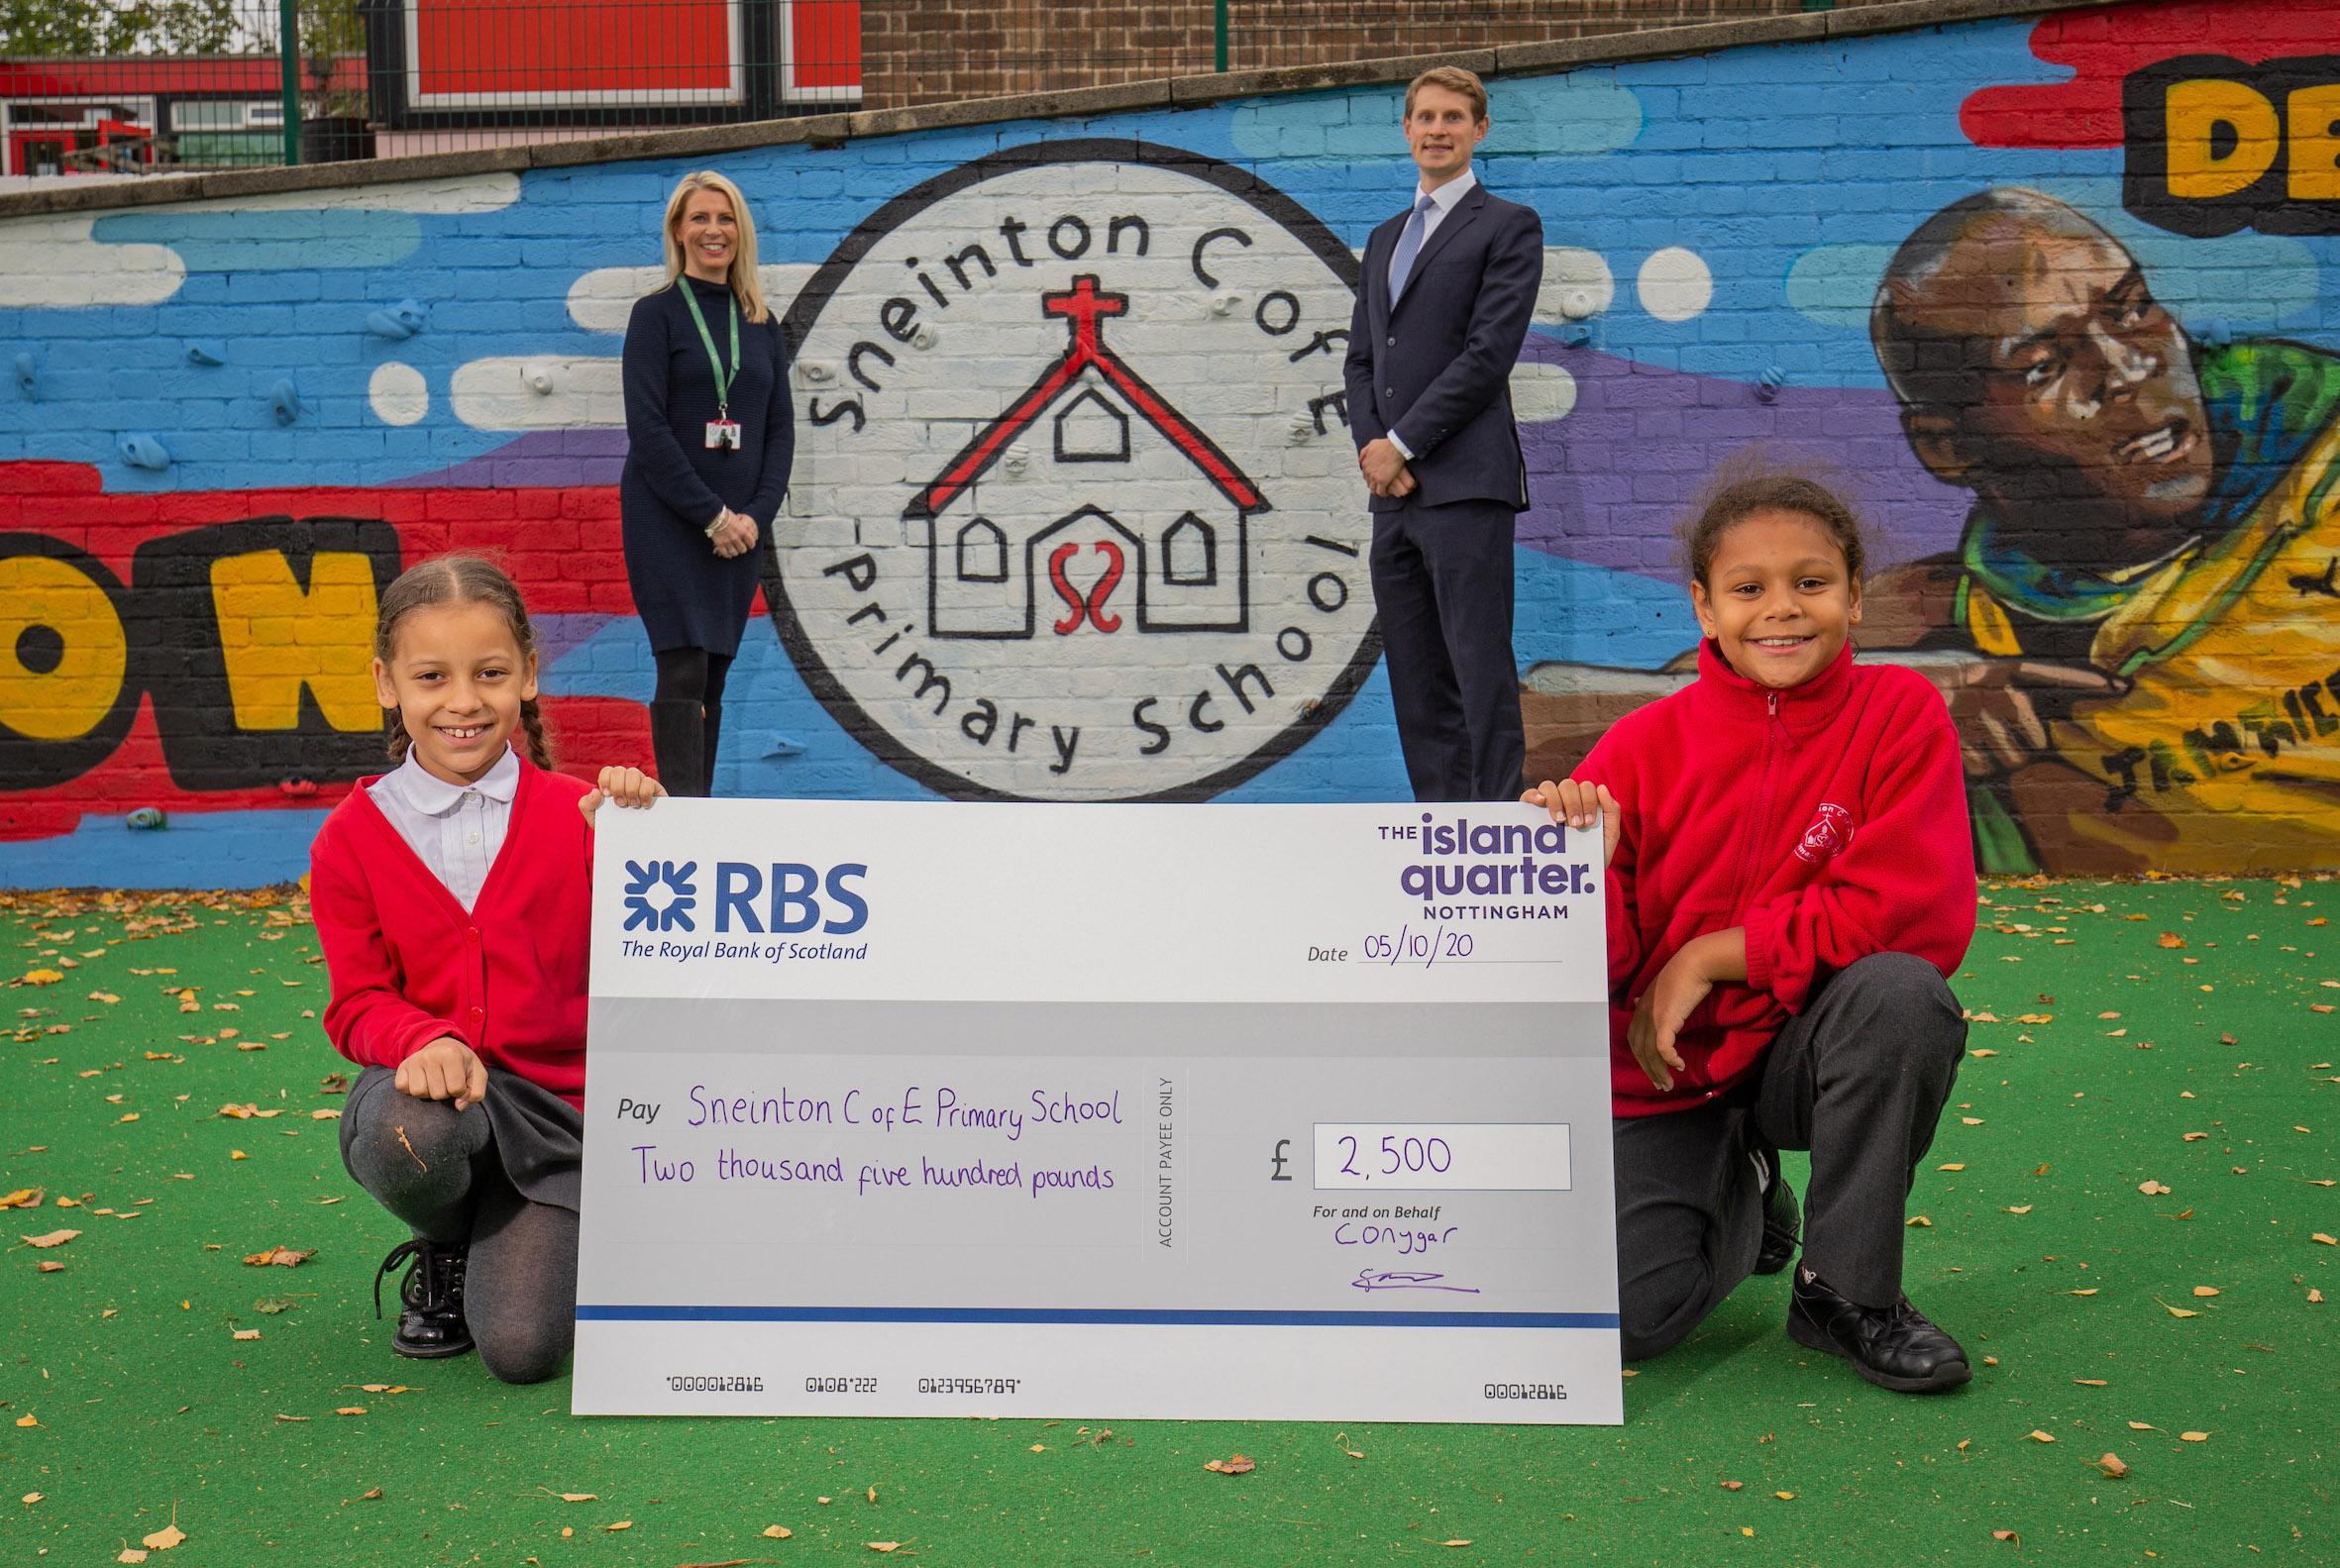 Nottingham city centre school gets £2.5k donation from The Island Quarter